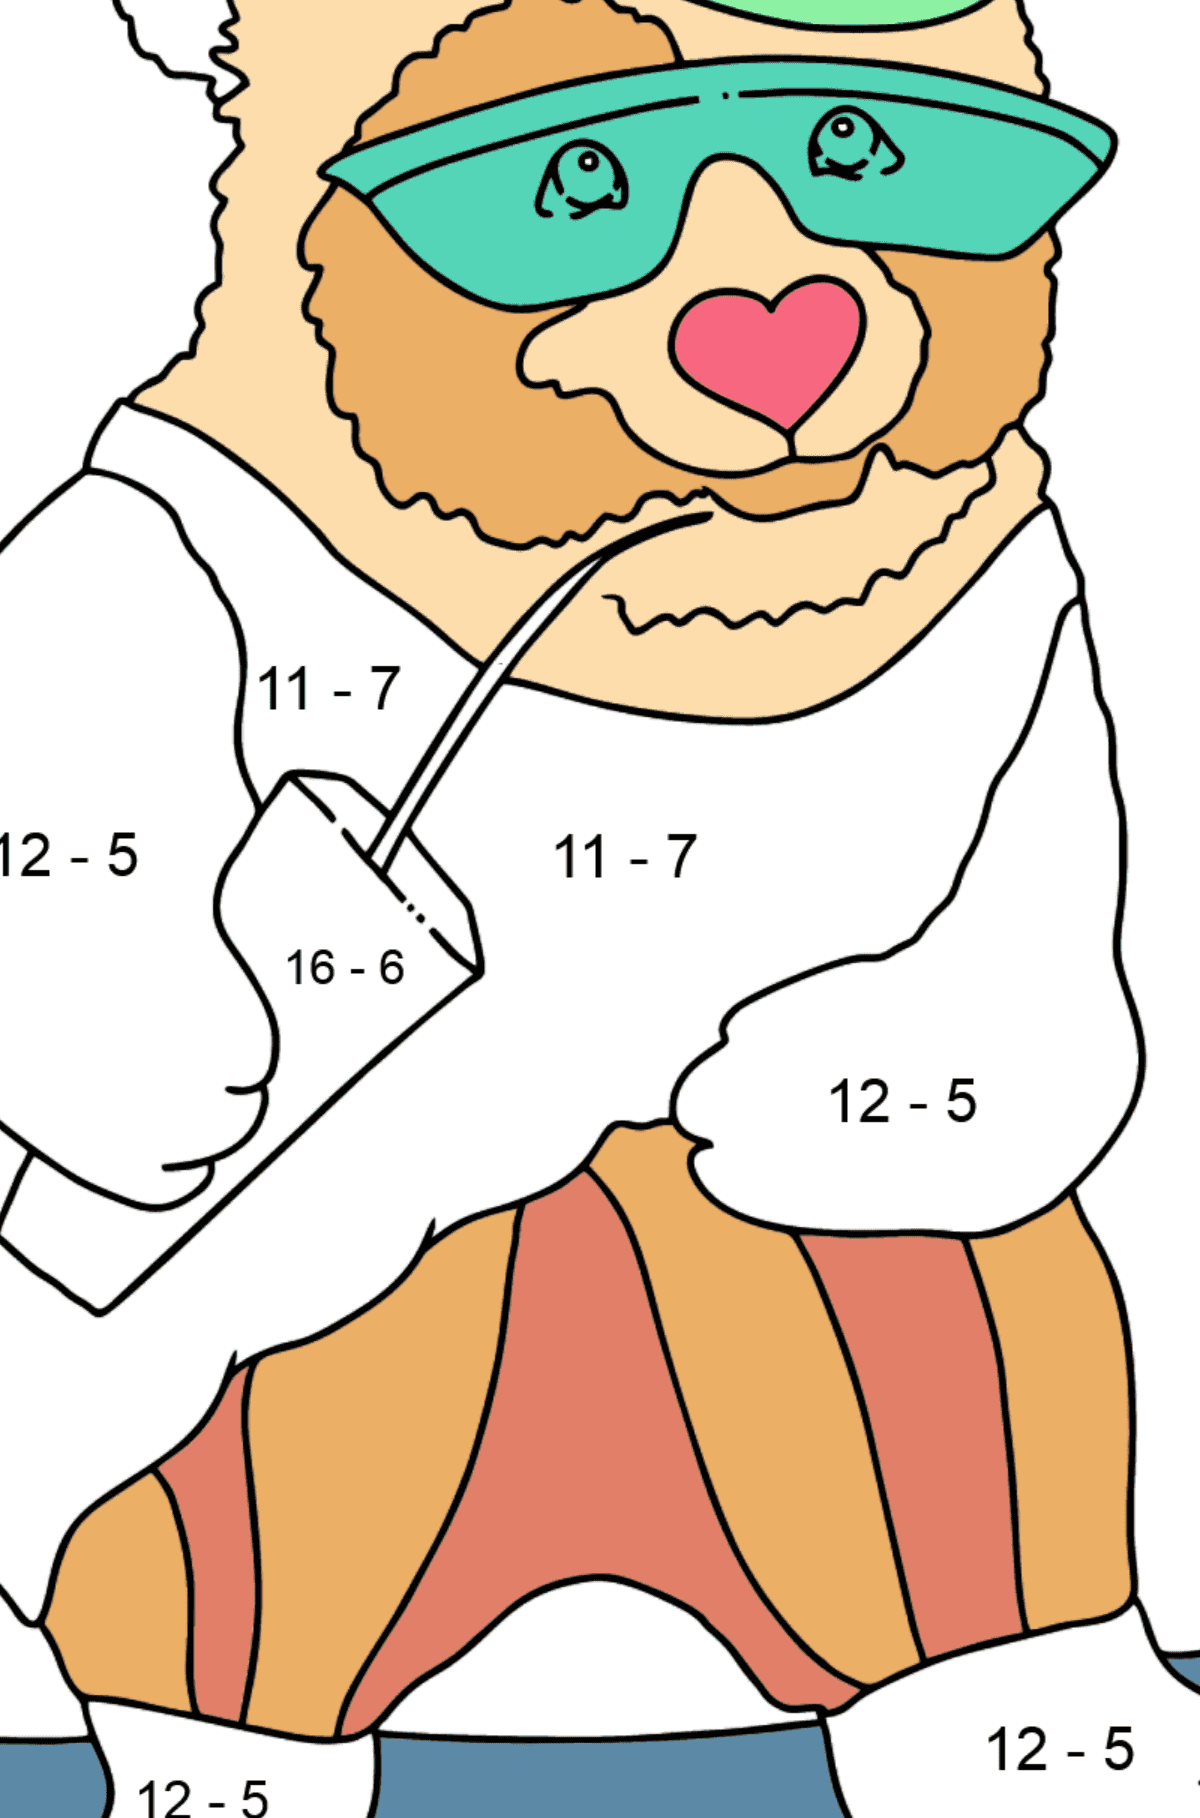 Coloring Page - A Panda is Learning to Ride a Skateboard - Math Coloring - Subtraction for Kids